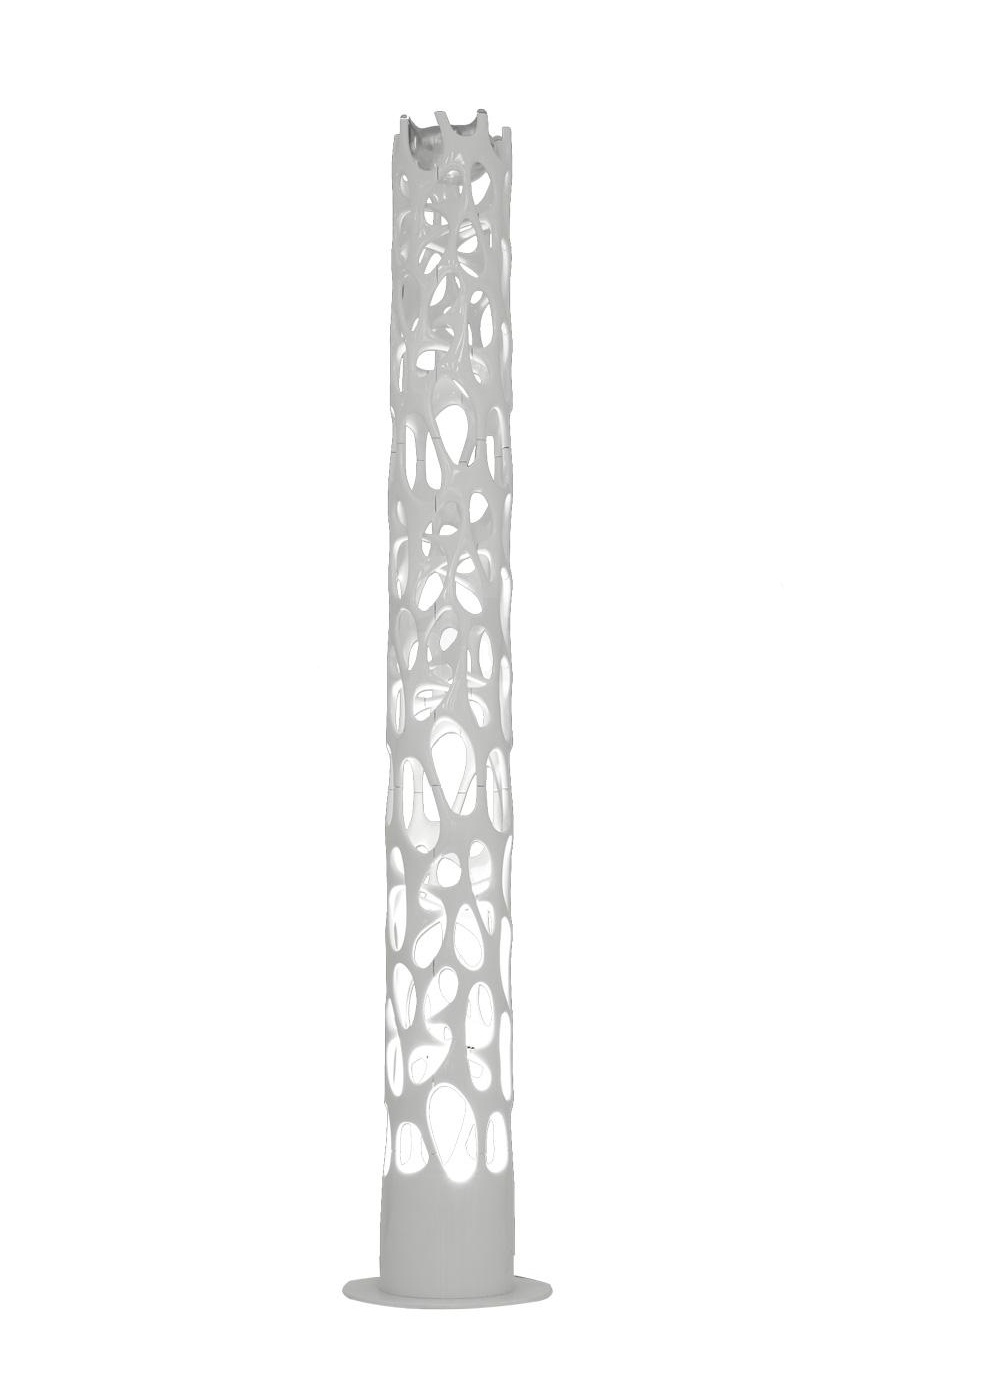 New Nature Floor lamp LED 55w with dimmer Bright white